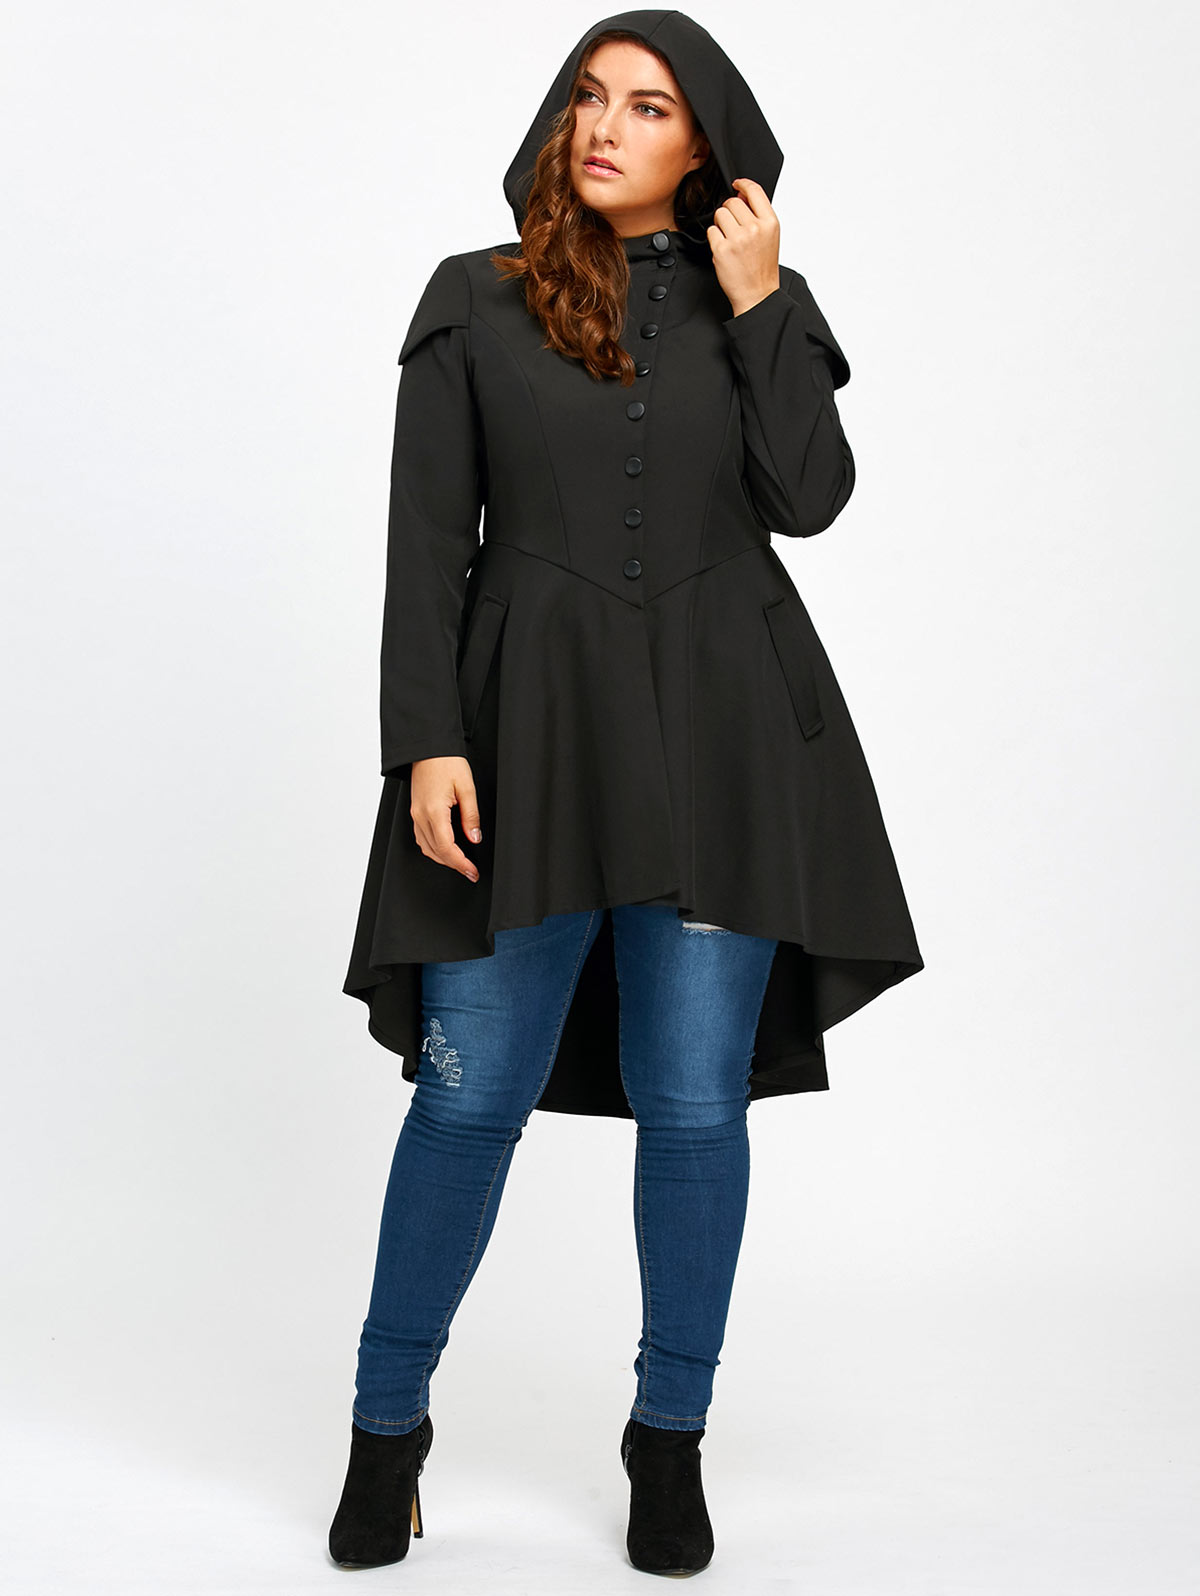 Wipalo Trendy Plus Size Lace Up High Low Hooded Coat Female ...